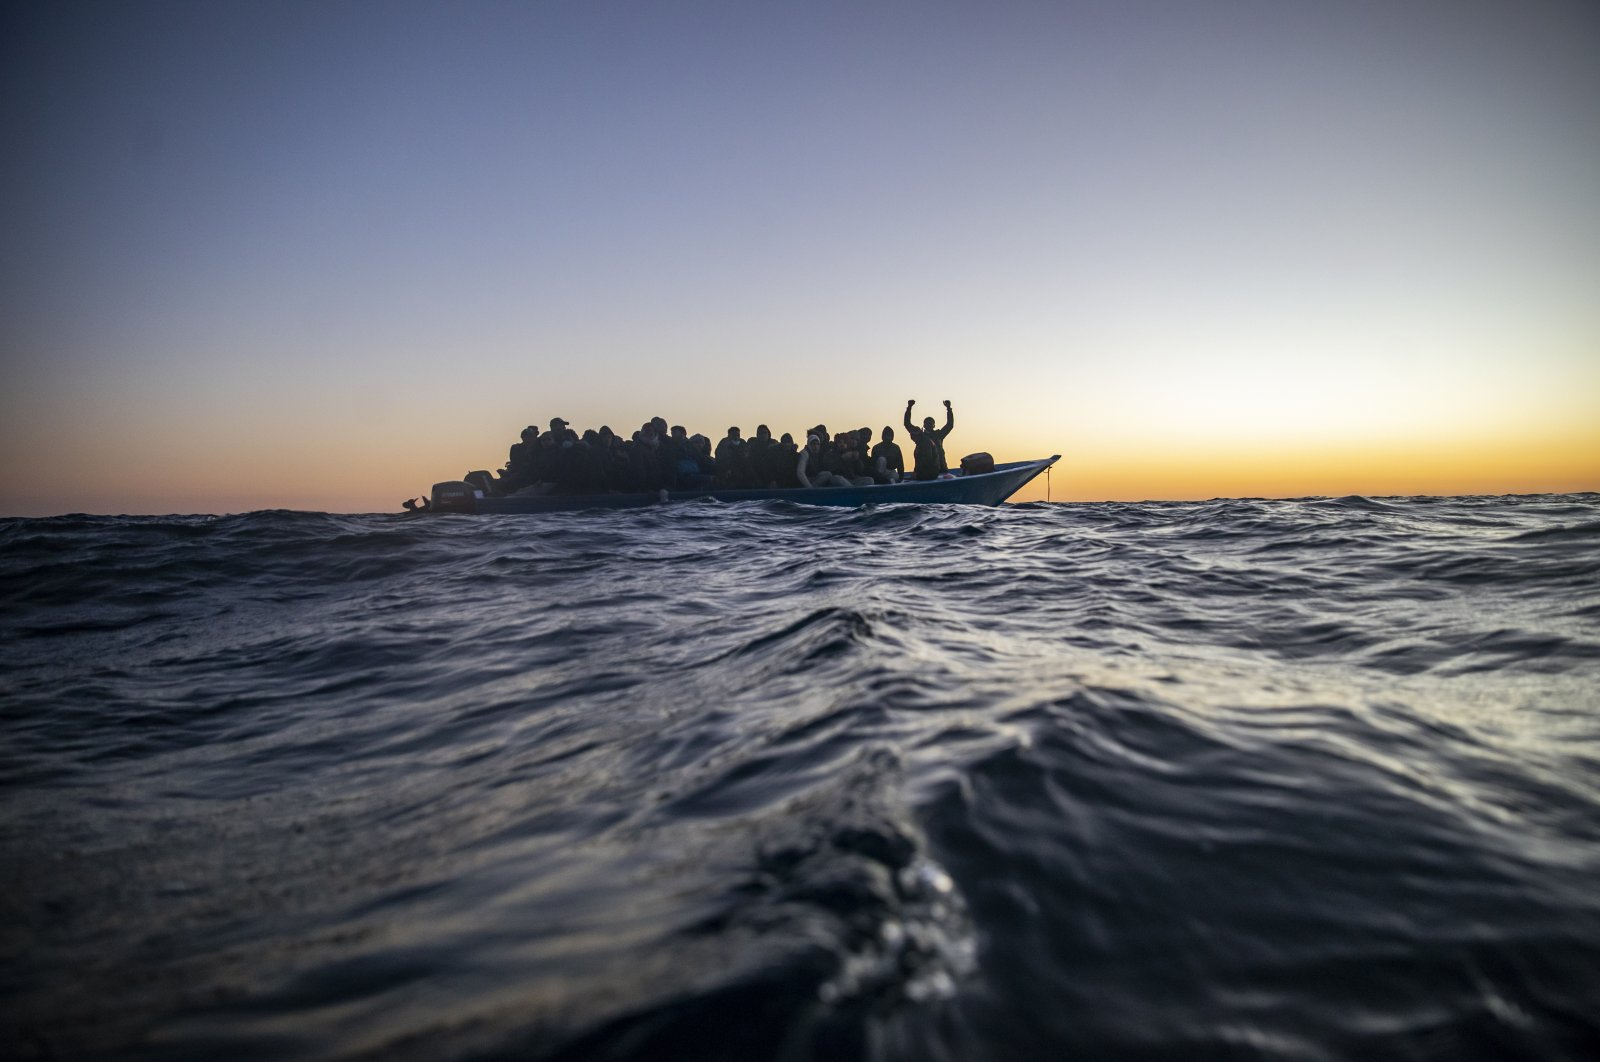 Migrants and refugees from different African nationalities wait for assistance aboard an overcrowded wooden boat, as aid workers of the Spanish NGO Open Arms approach them in the Mediterranean Sea, international waters, at 122 miles off the Libyan coast, Feb. 12, 2021. (AP Photo)